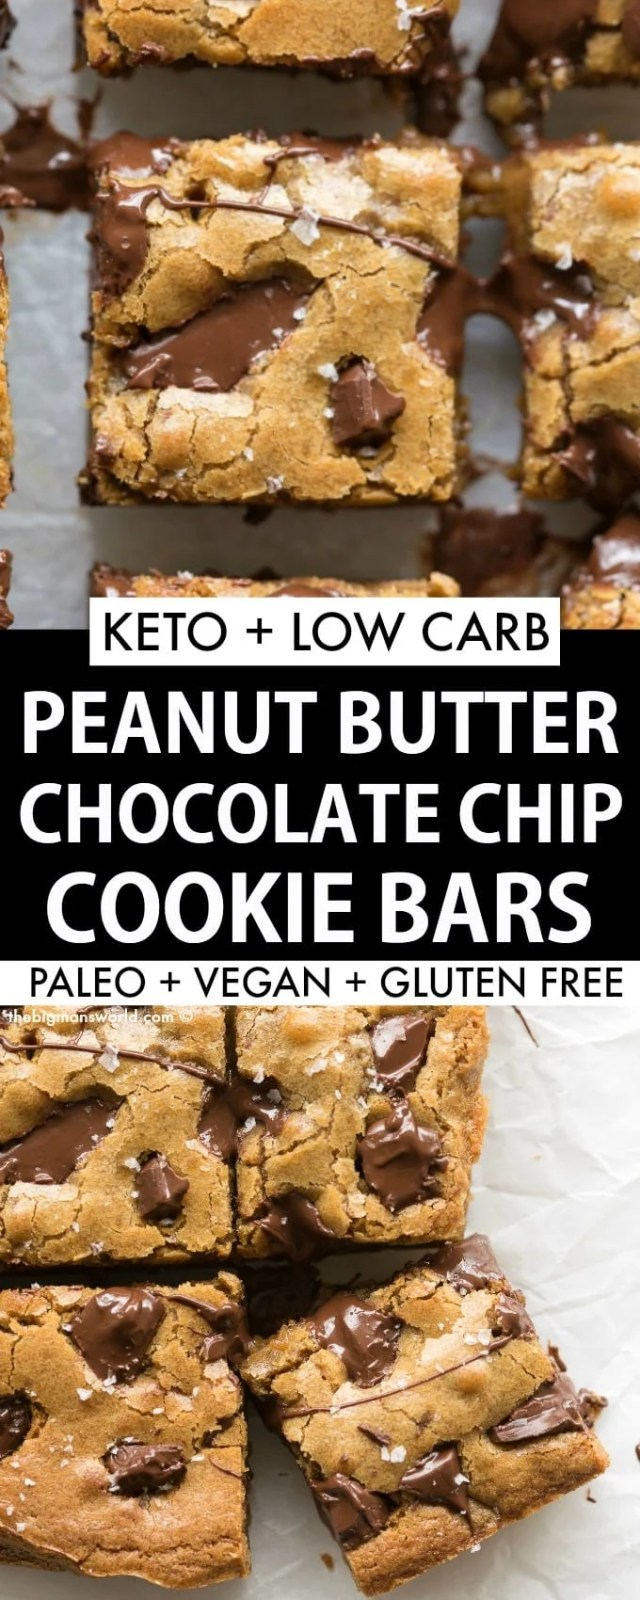 Peanut Butter Chocolate Chip Cookie Bars that are keto, vegan, paleo and gluten free.